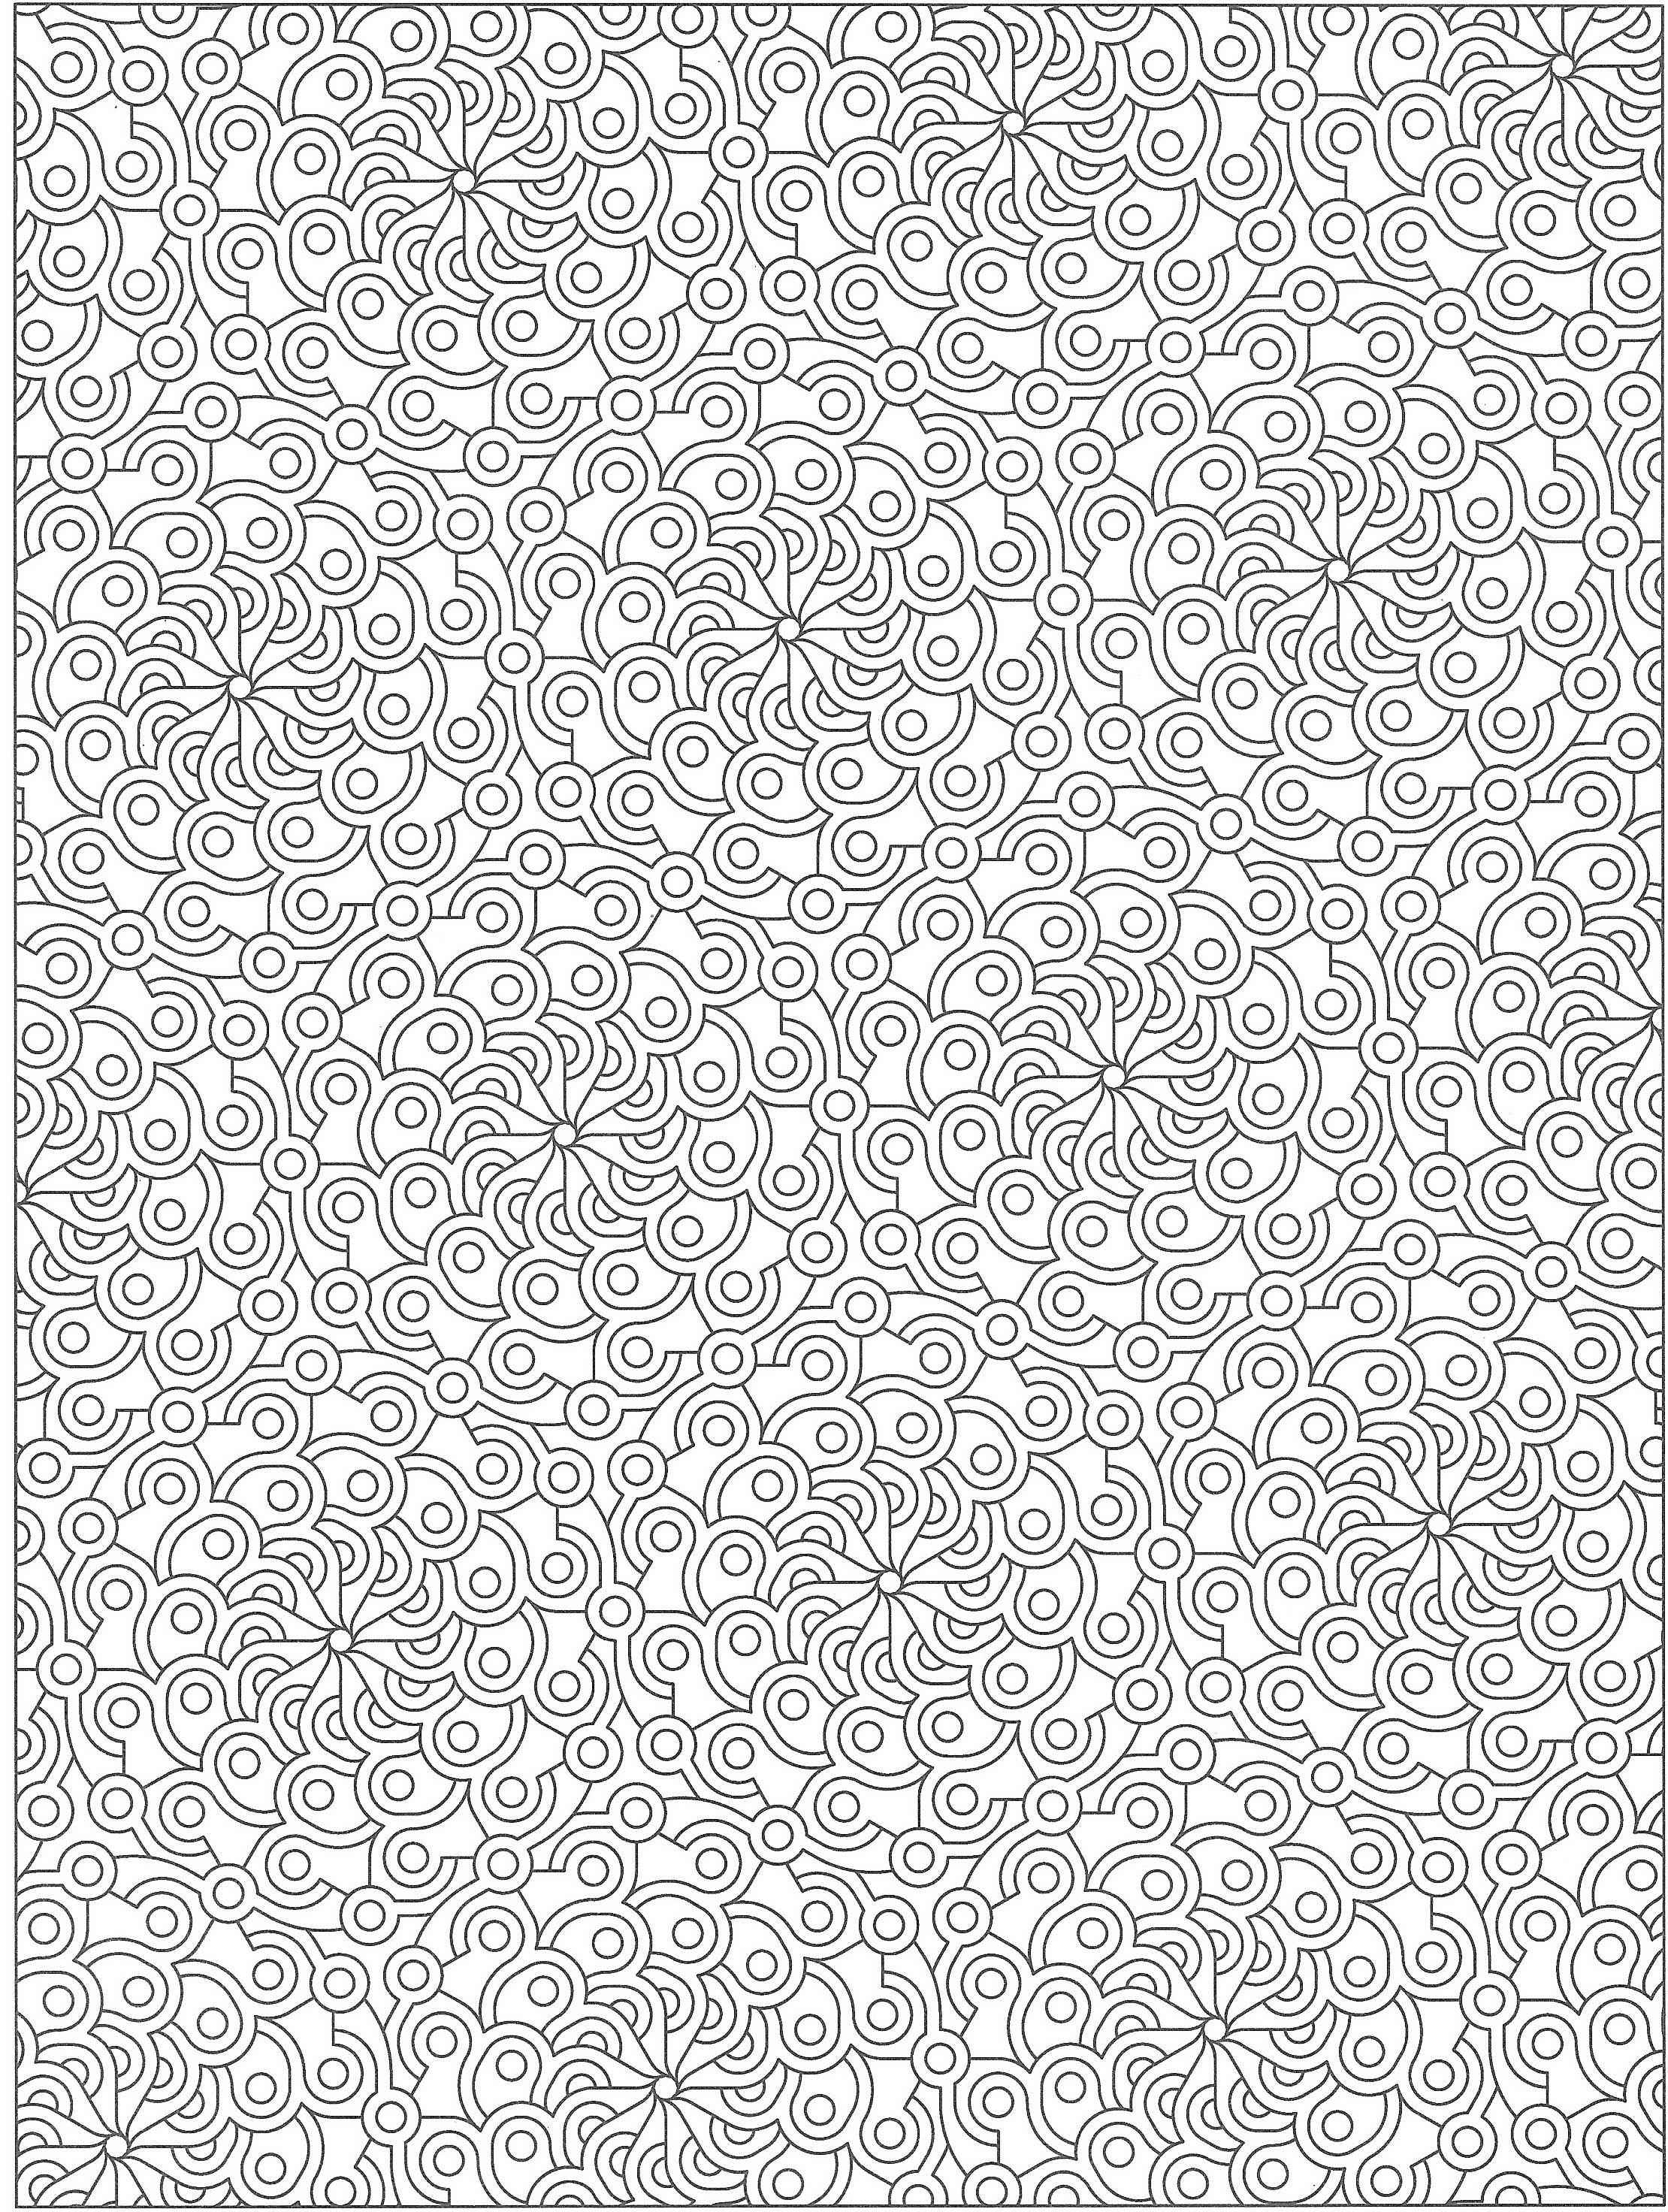 tessellations coloring pages free tessellations coloring pages coloring home tessellations coloring pages 1 1